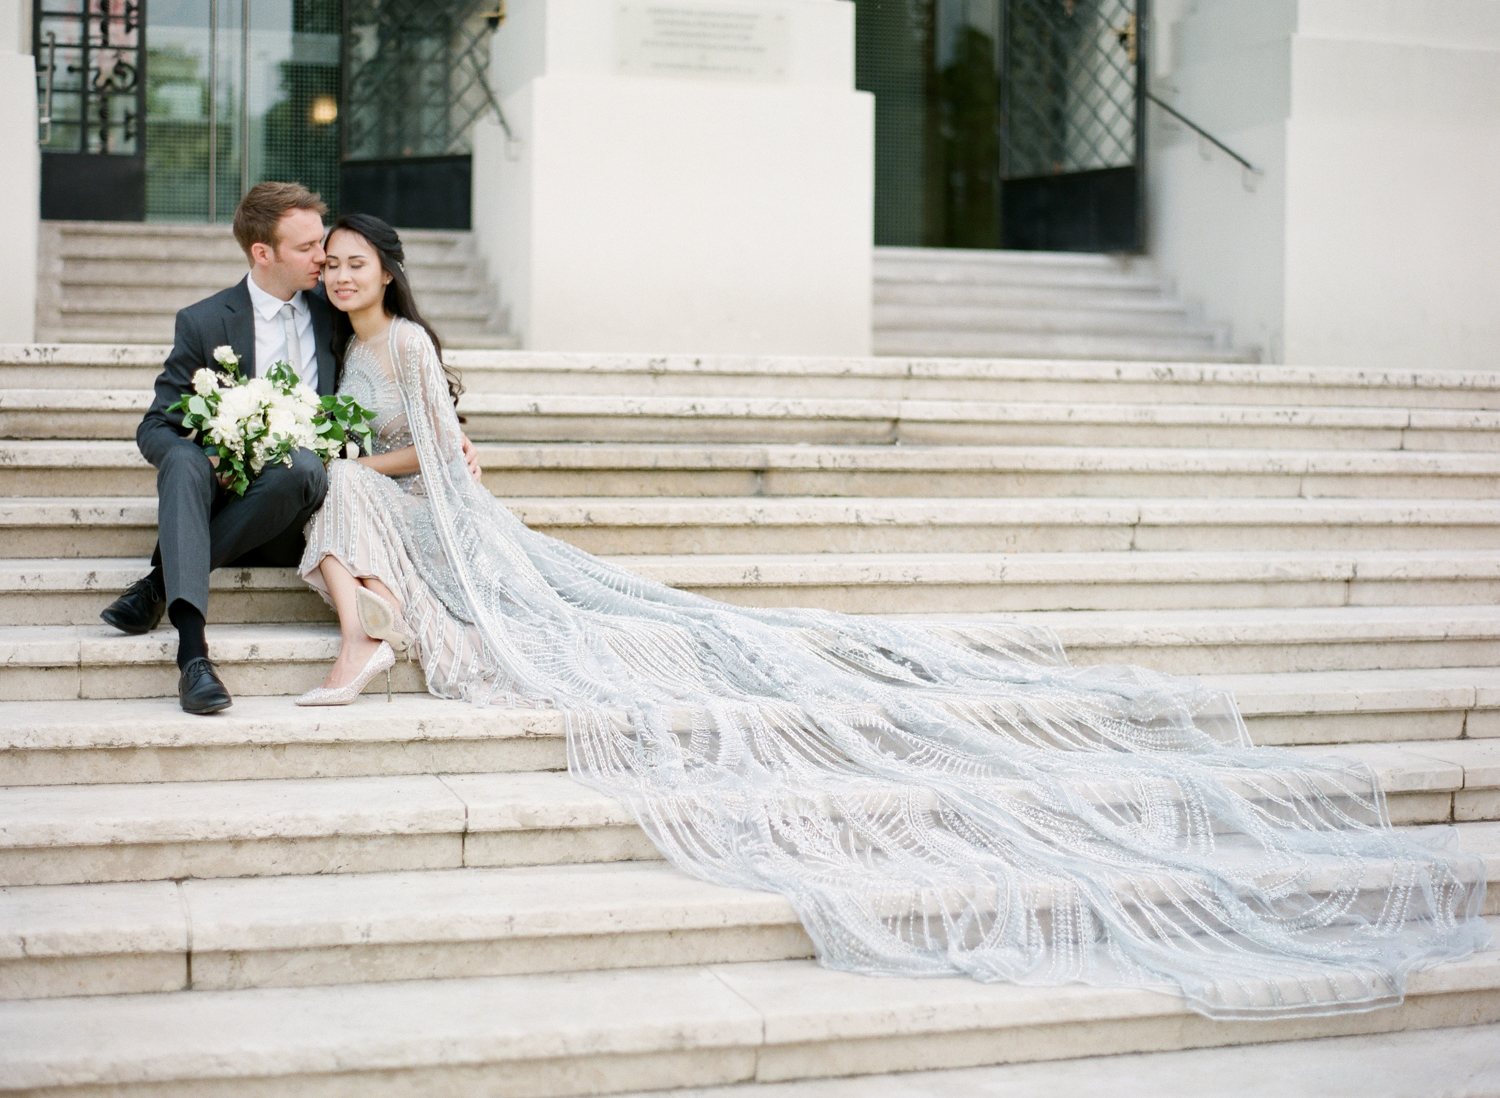 Vienna_prewedding_shoot_nikol_bodnarova_resized_03.JPG